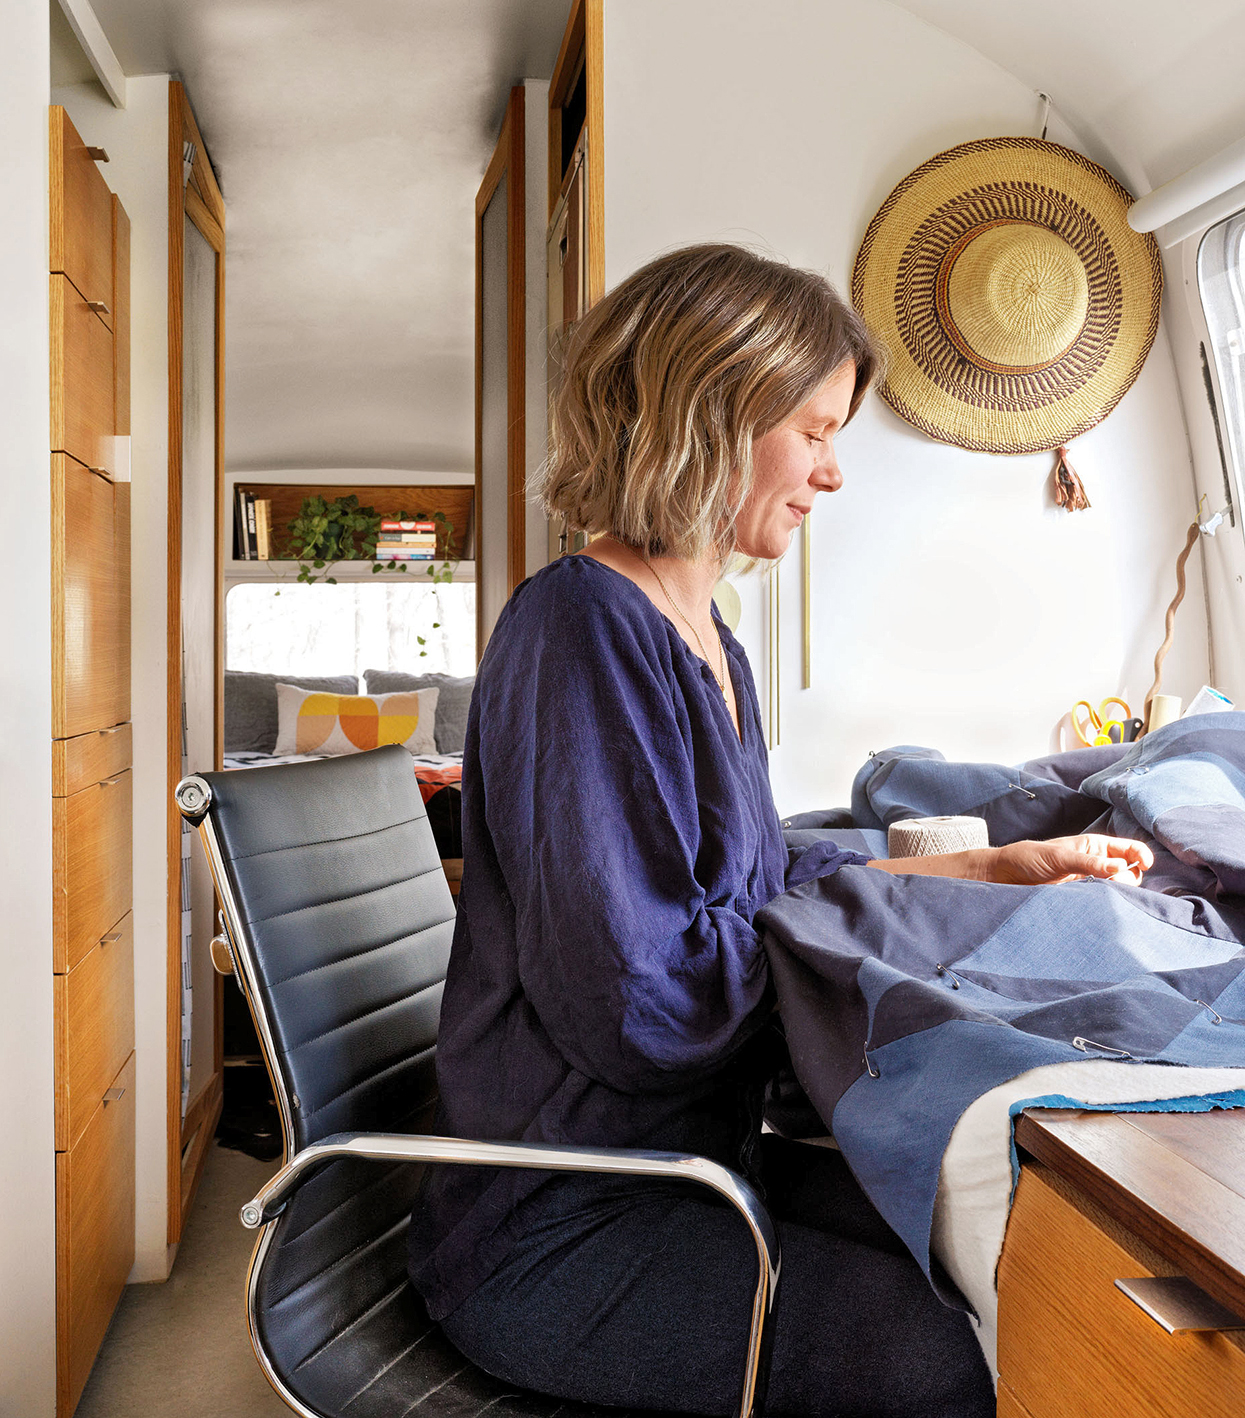 woman works on quilt in airstream trailer